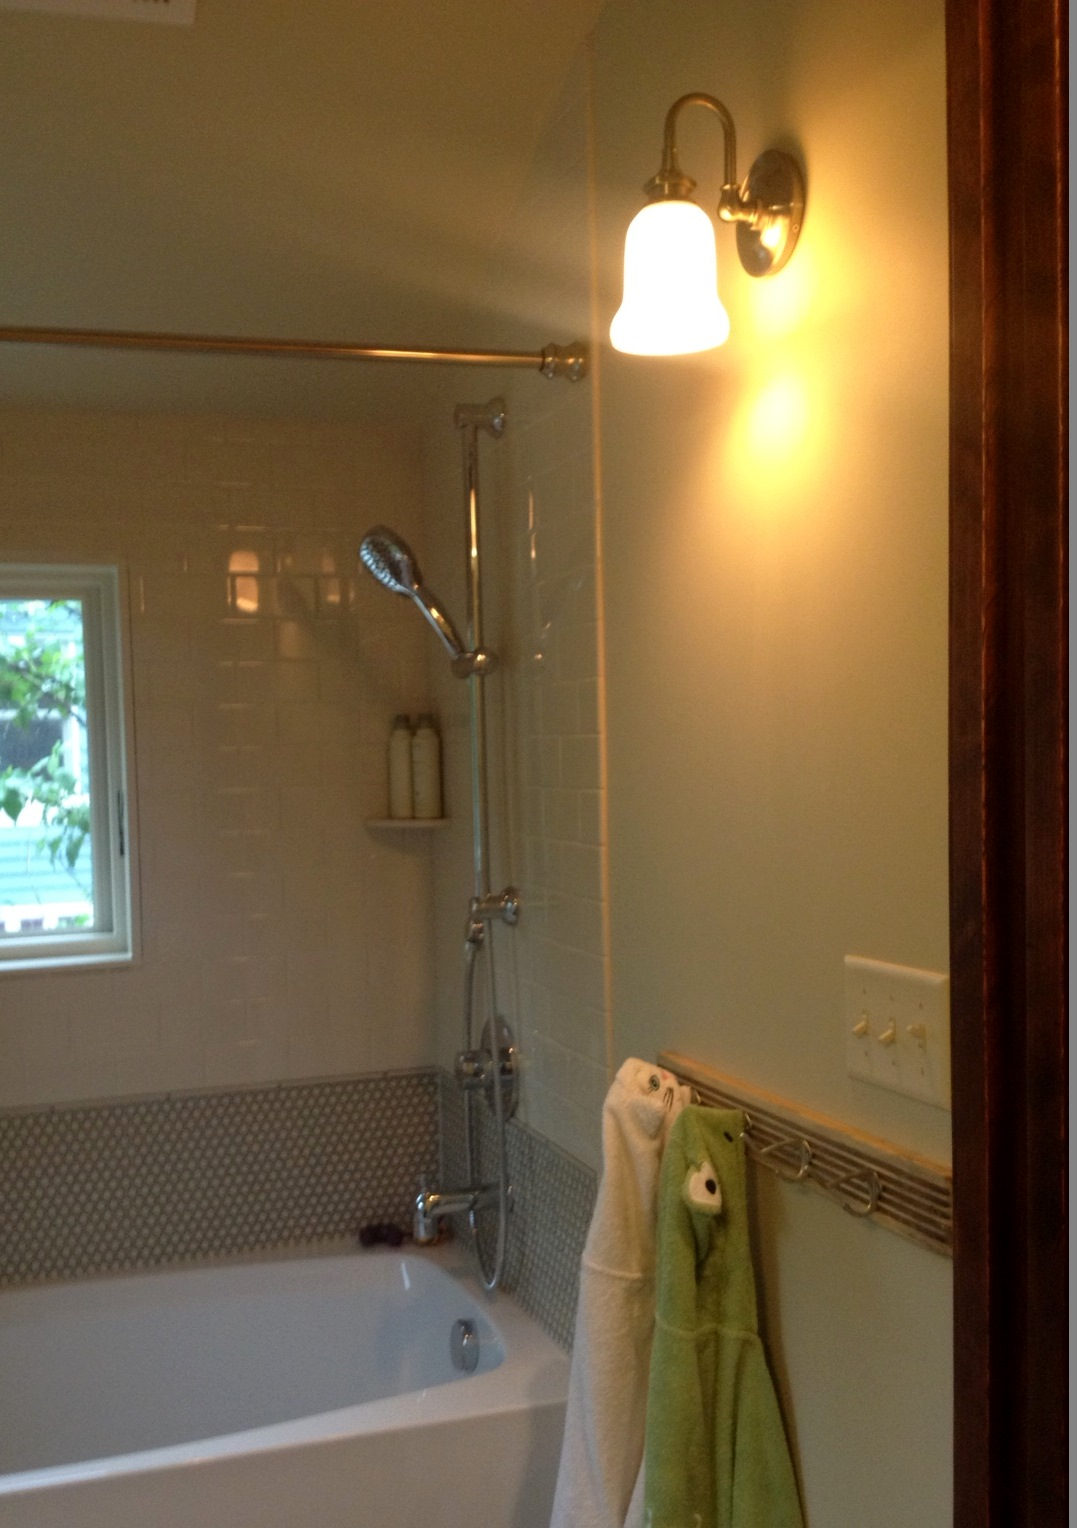 Vintage Vanity Lights Add Retro Spin To Kids Bath Remodel